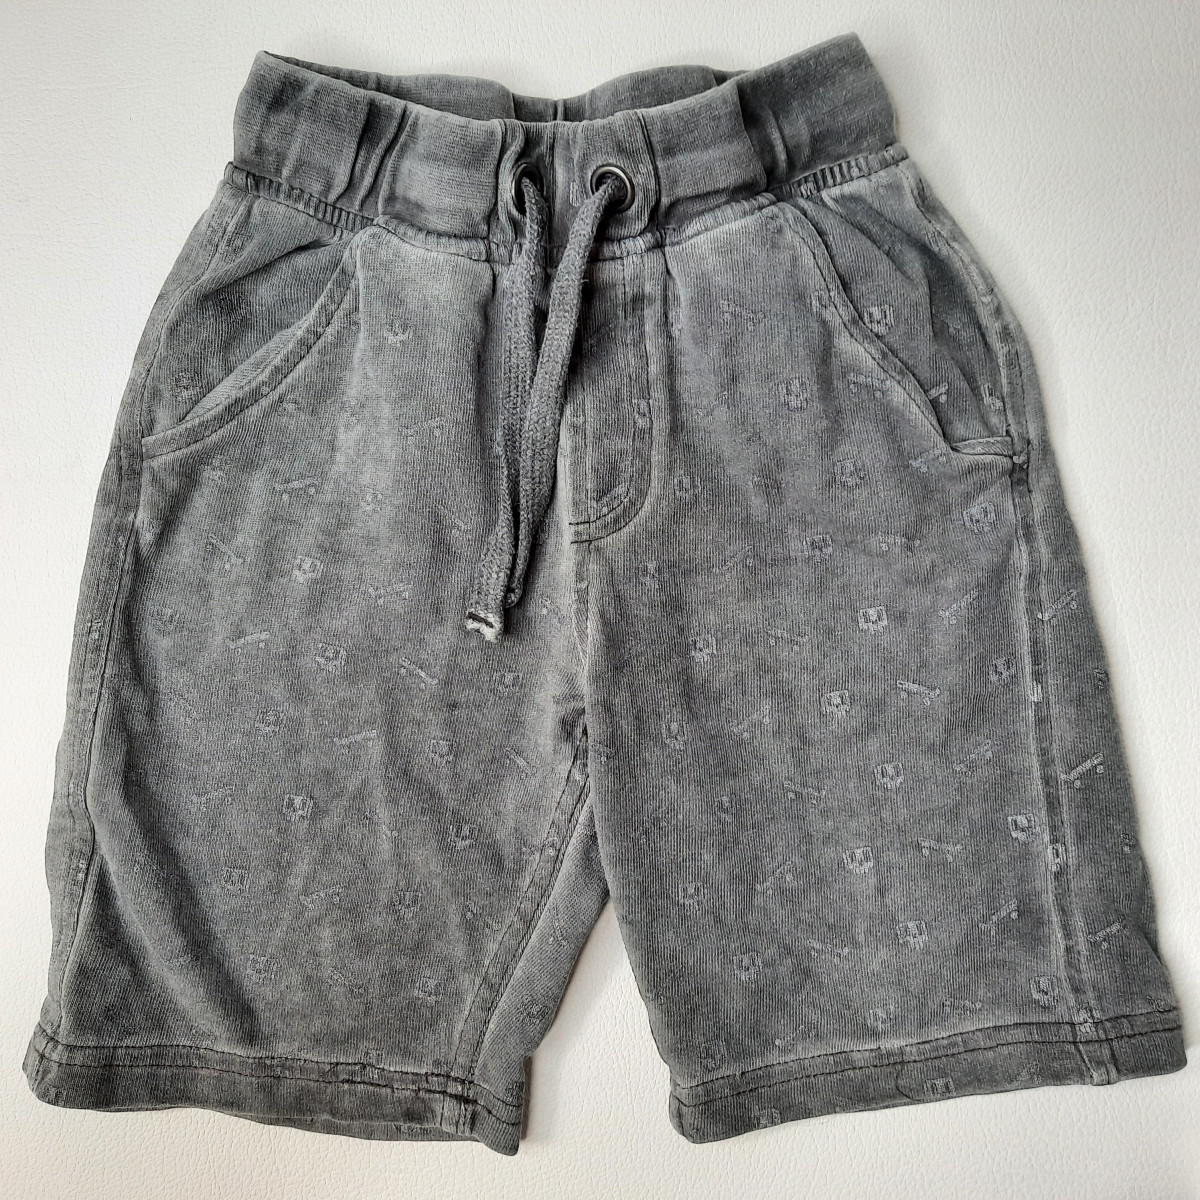 Shorts, Bermudas - photo 16